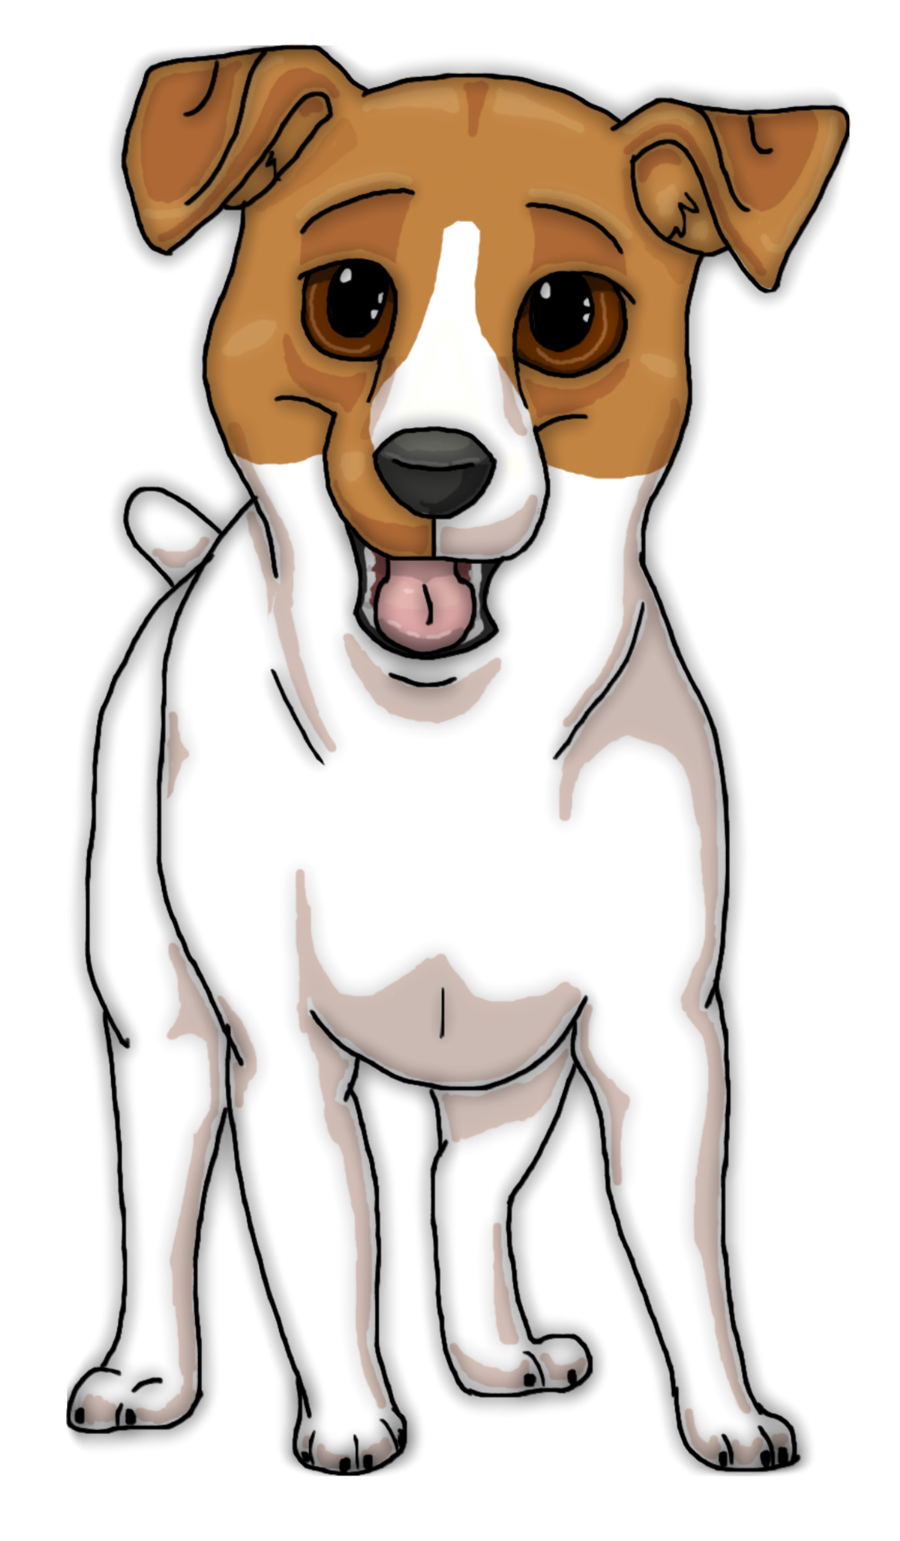 Dog dead clipart svg freeuse download Jack Russell Clipart at GetDrawings.com | Free for personal use Jack ... svg freeuse download